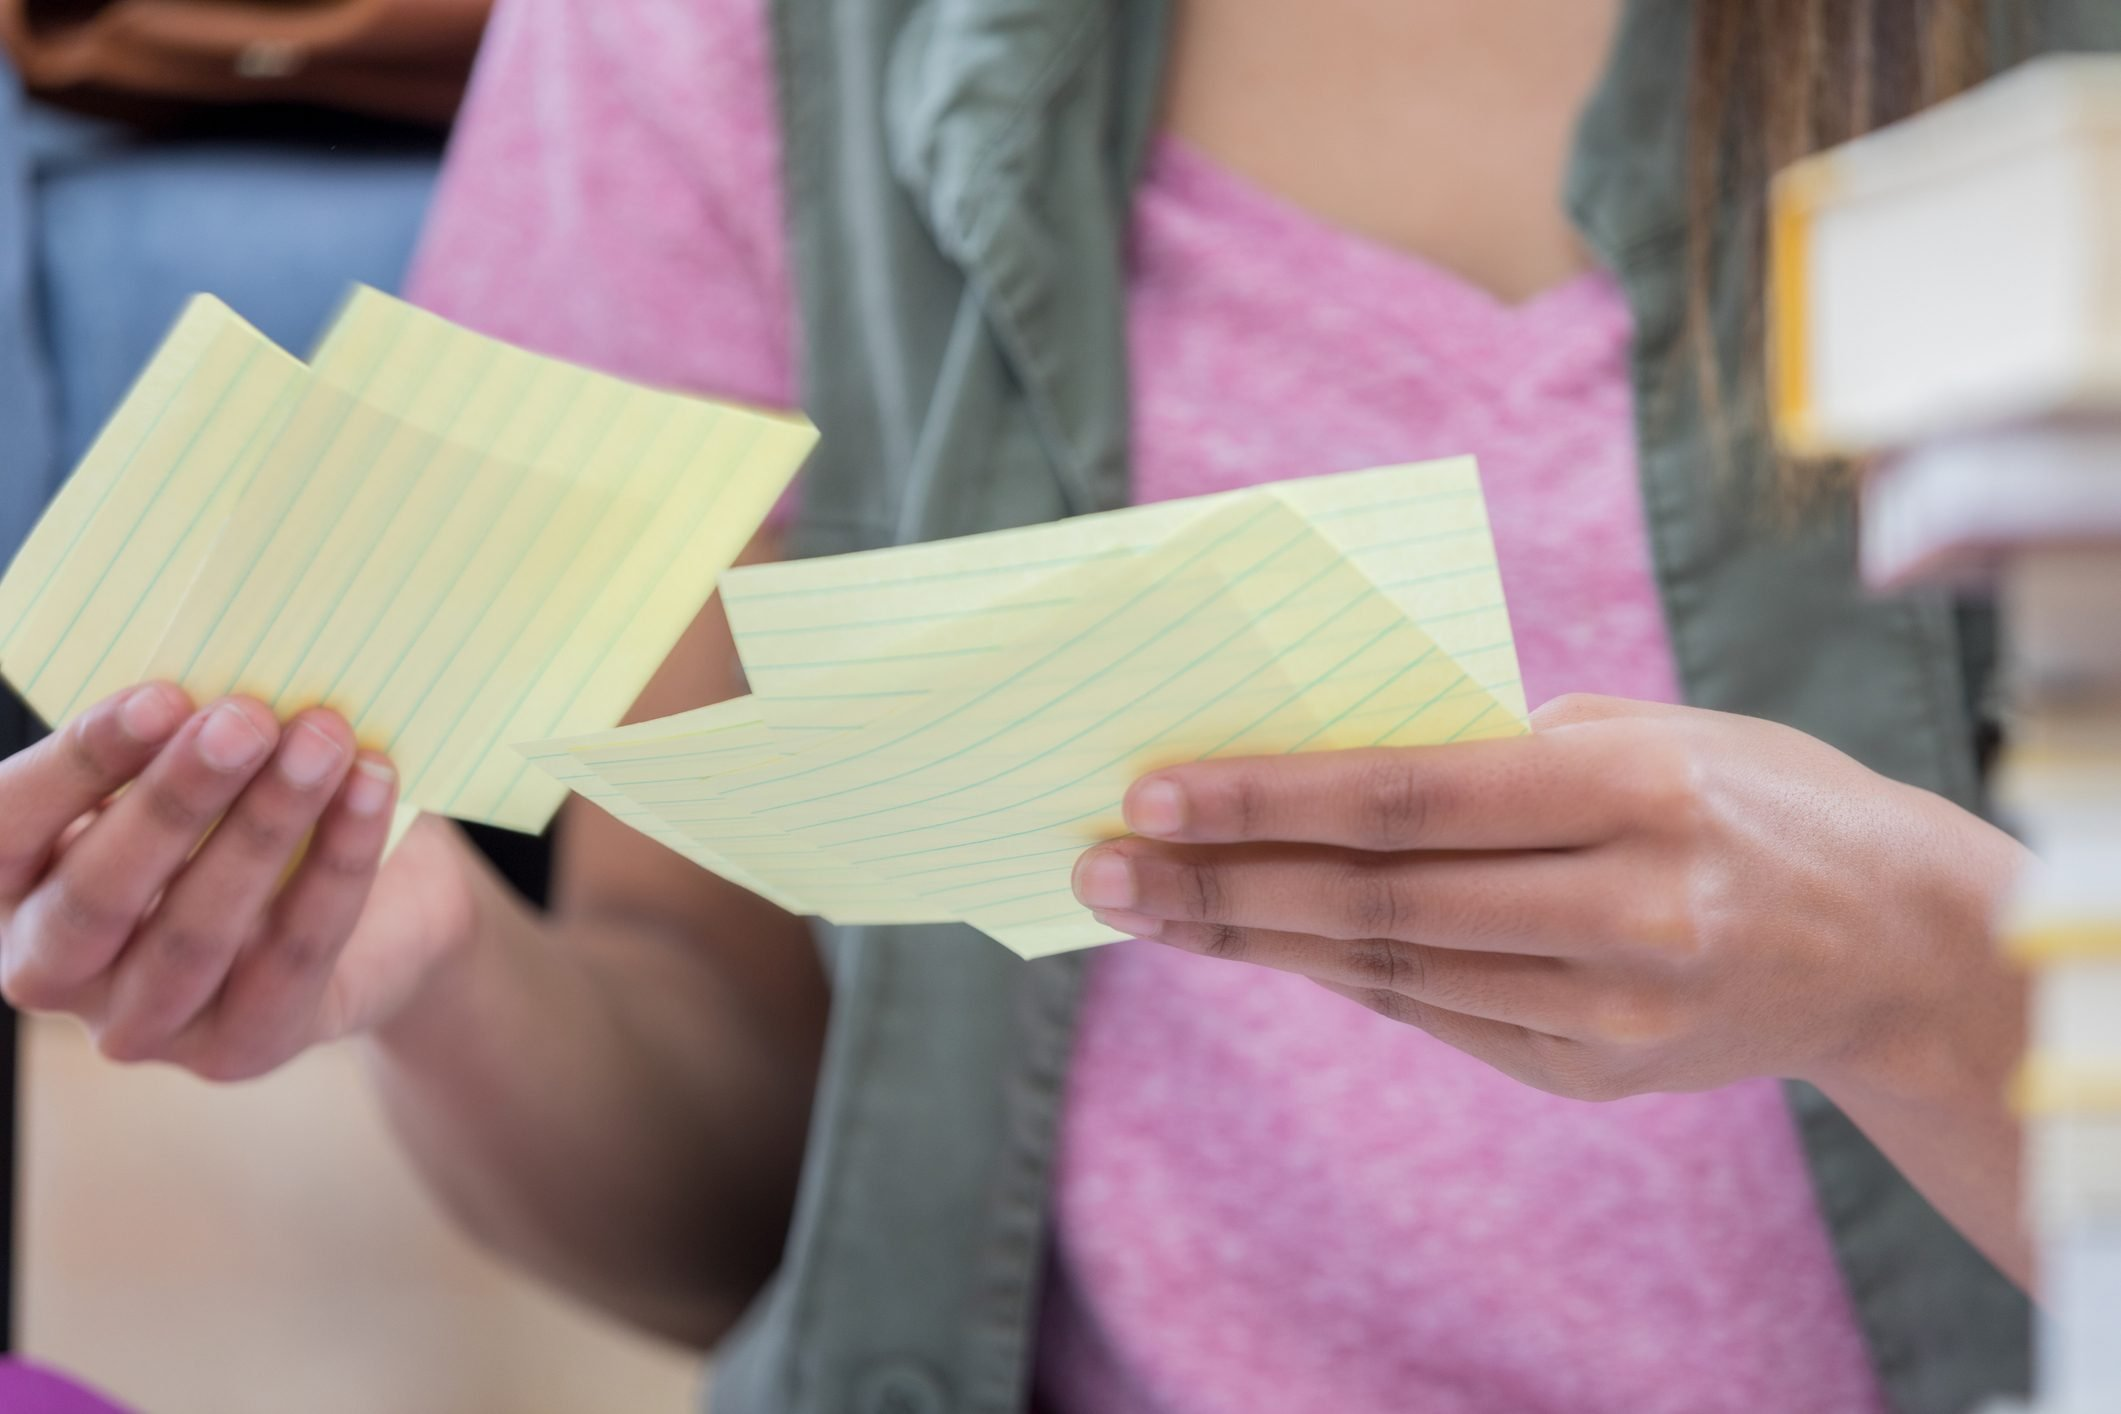 Unrecognizable college student uses notecards